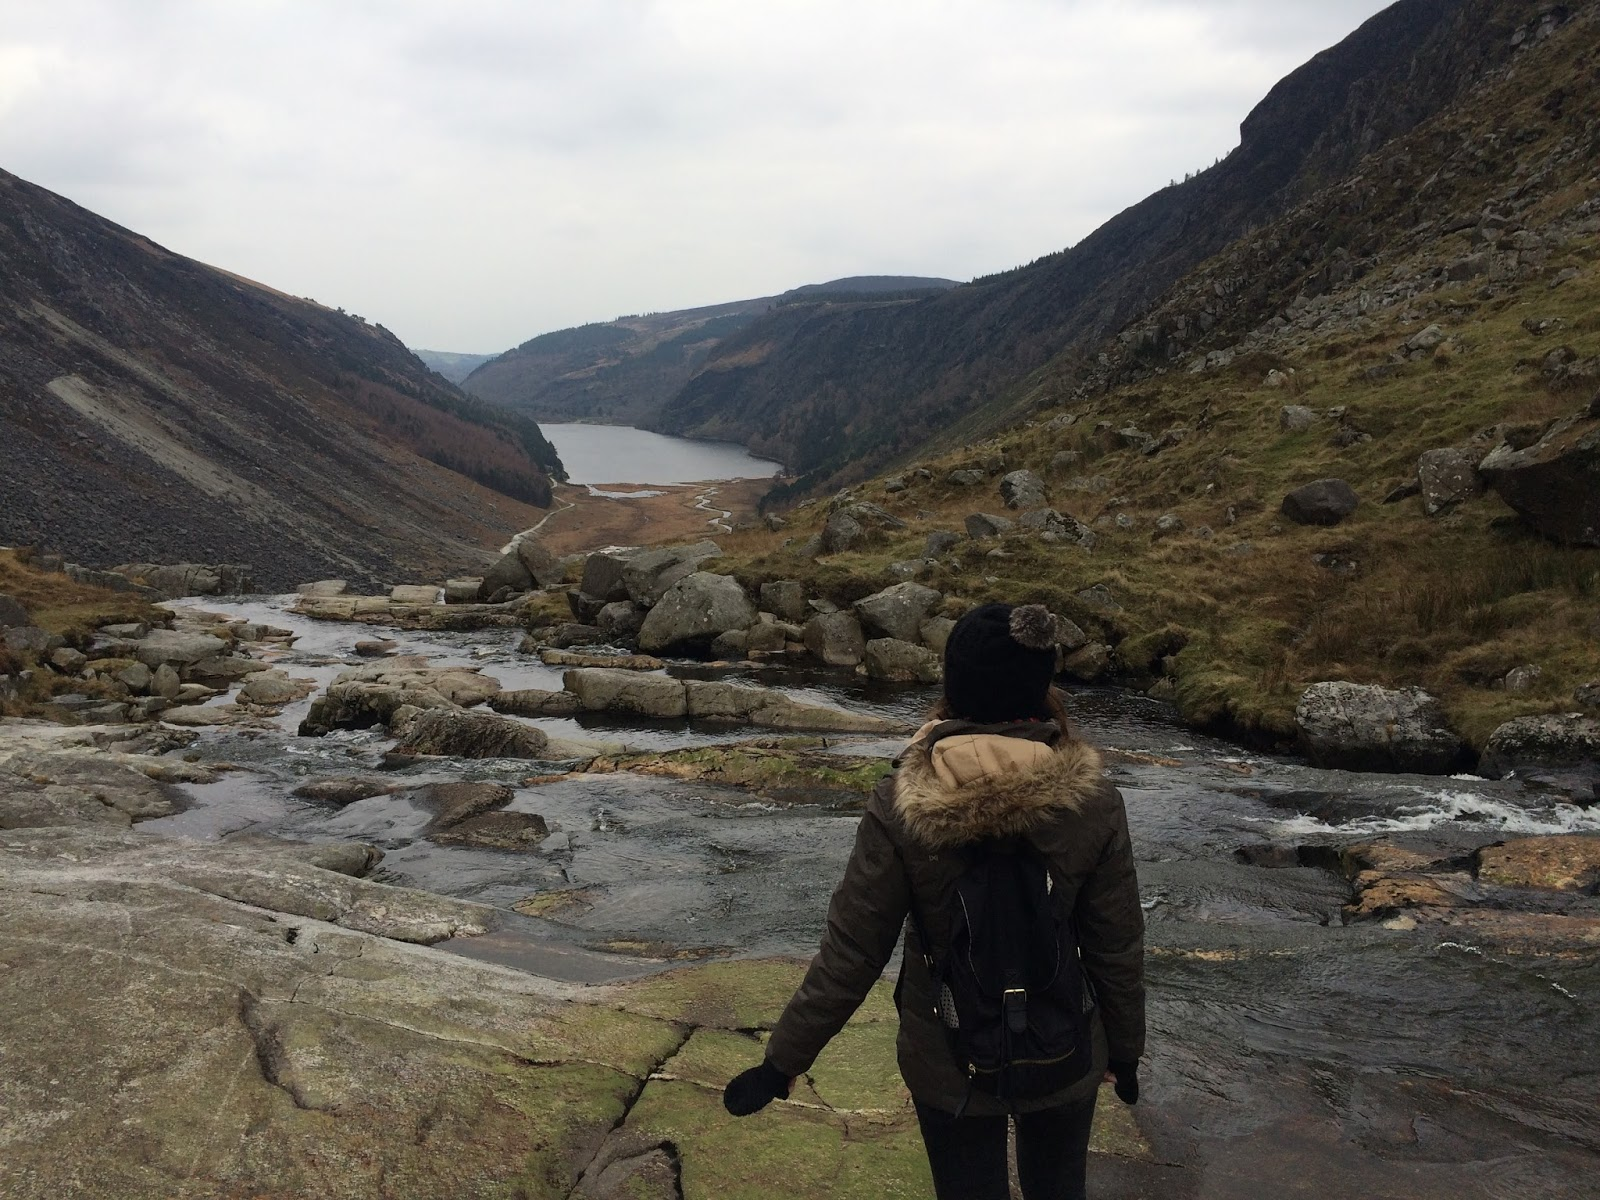 Hiking in the Wicklow Mountains, Ireland